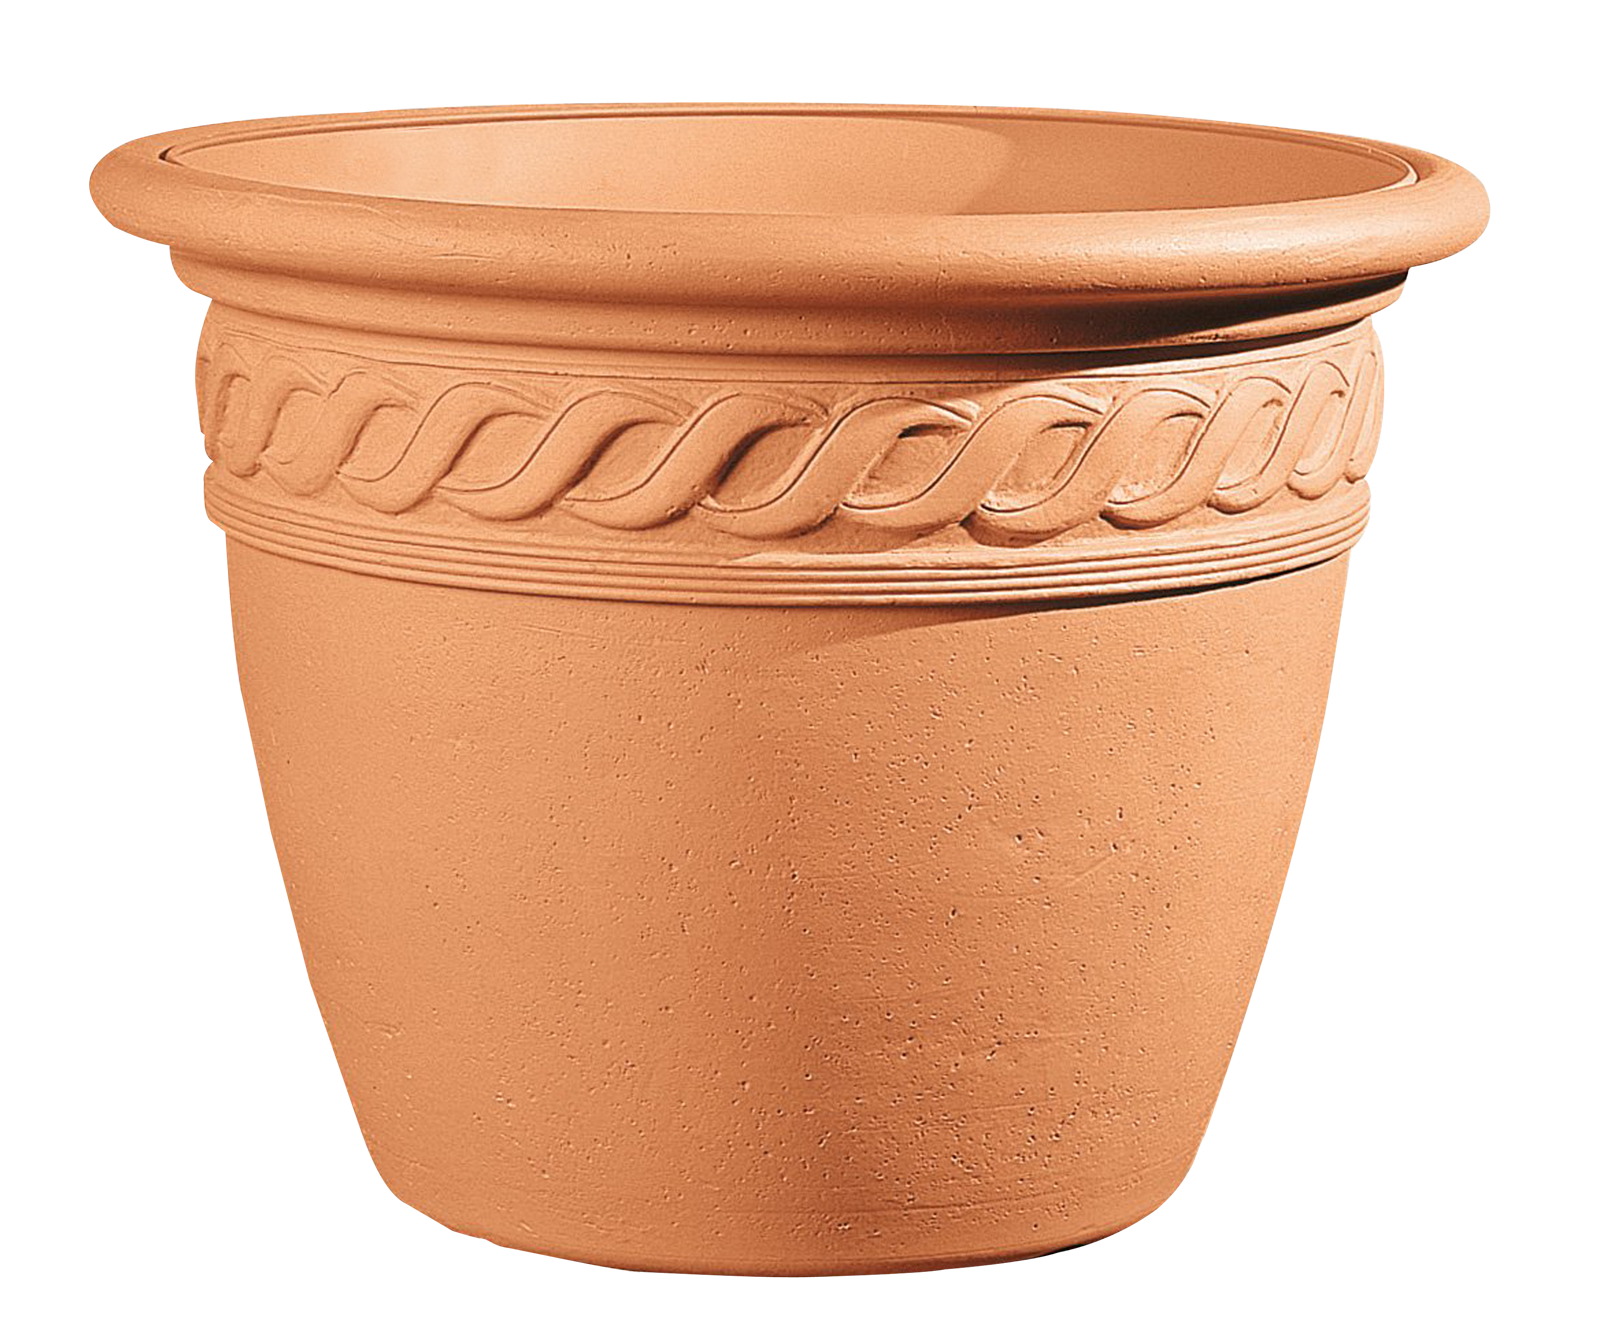 Flower pot png image purepng free transparent cc0 png image library workwithnaturefo